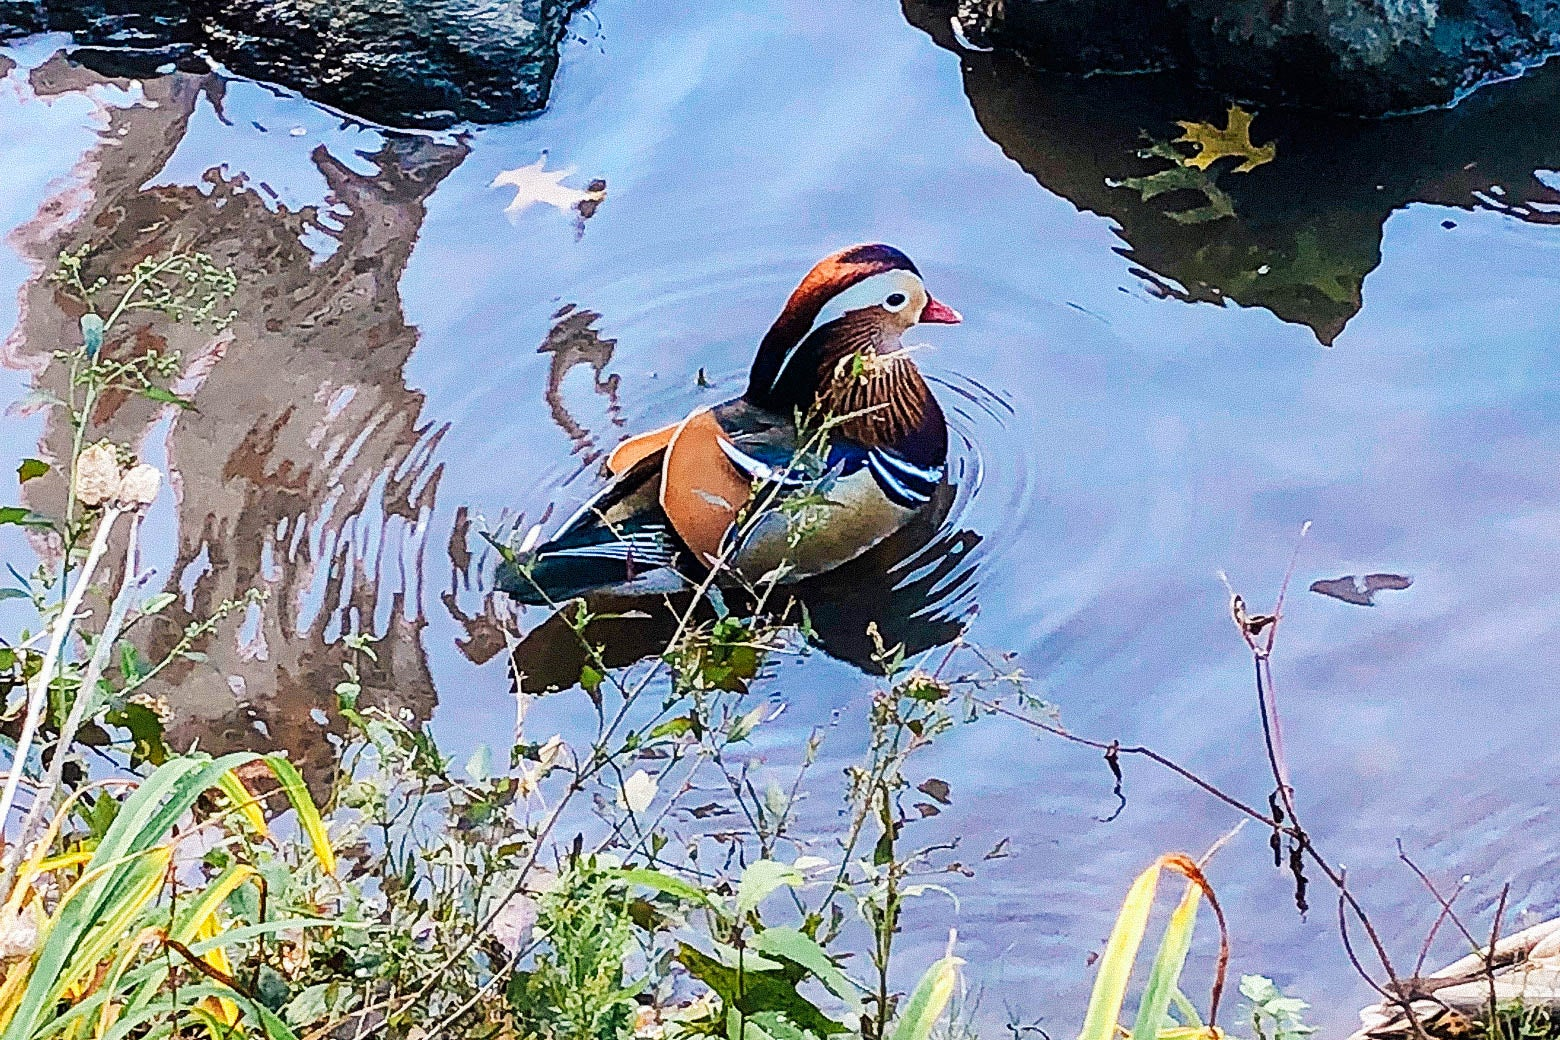 The mandarin duck in Central Park.